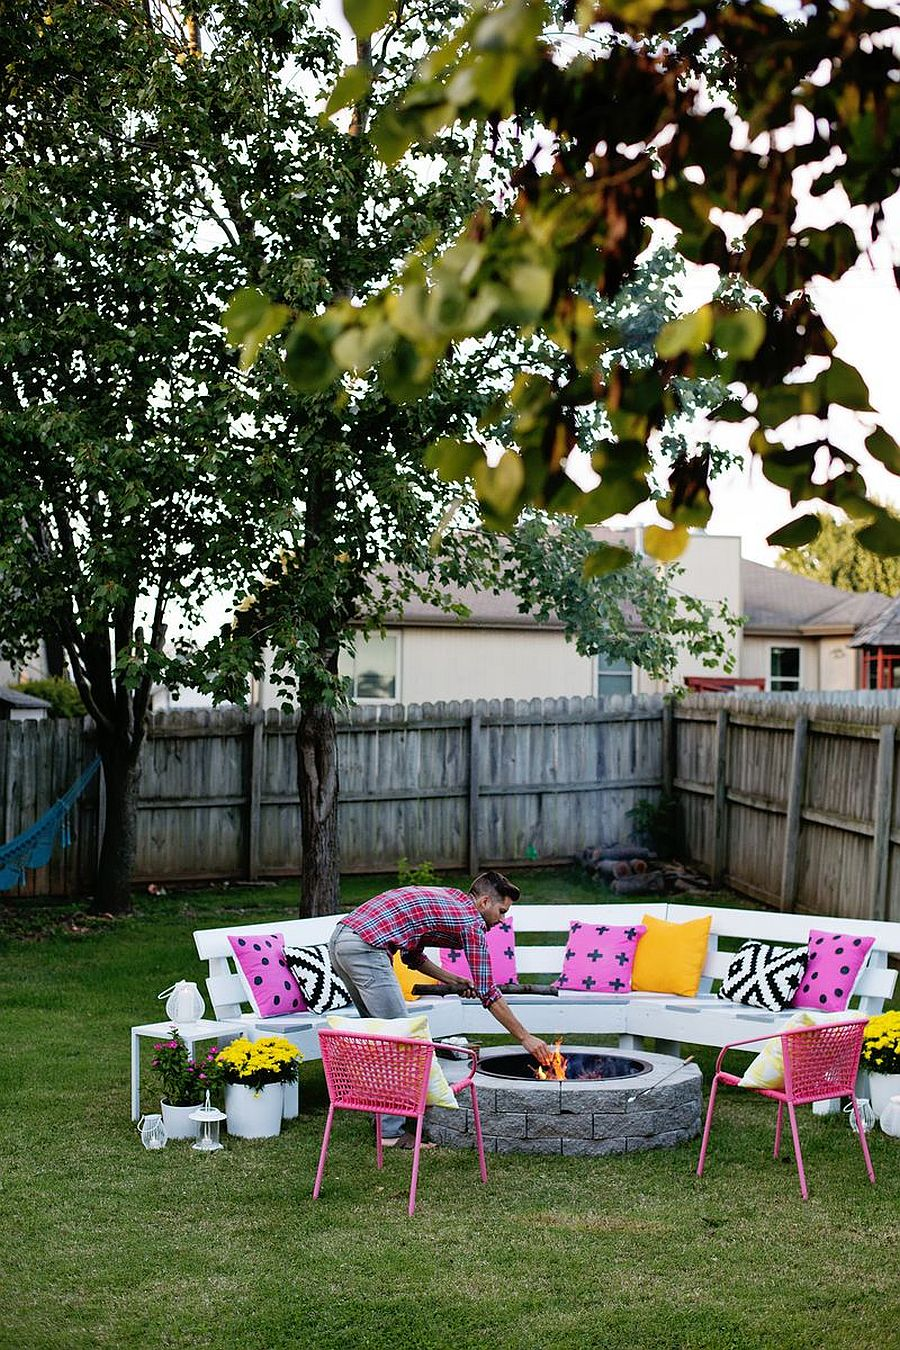 Modern and stylish DIY firepit with wooden bench around it